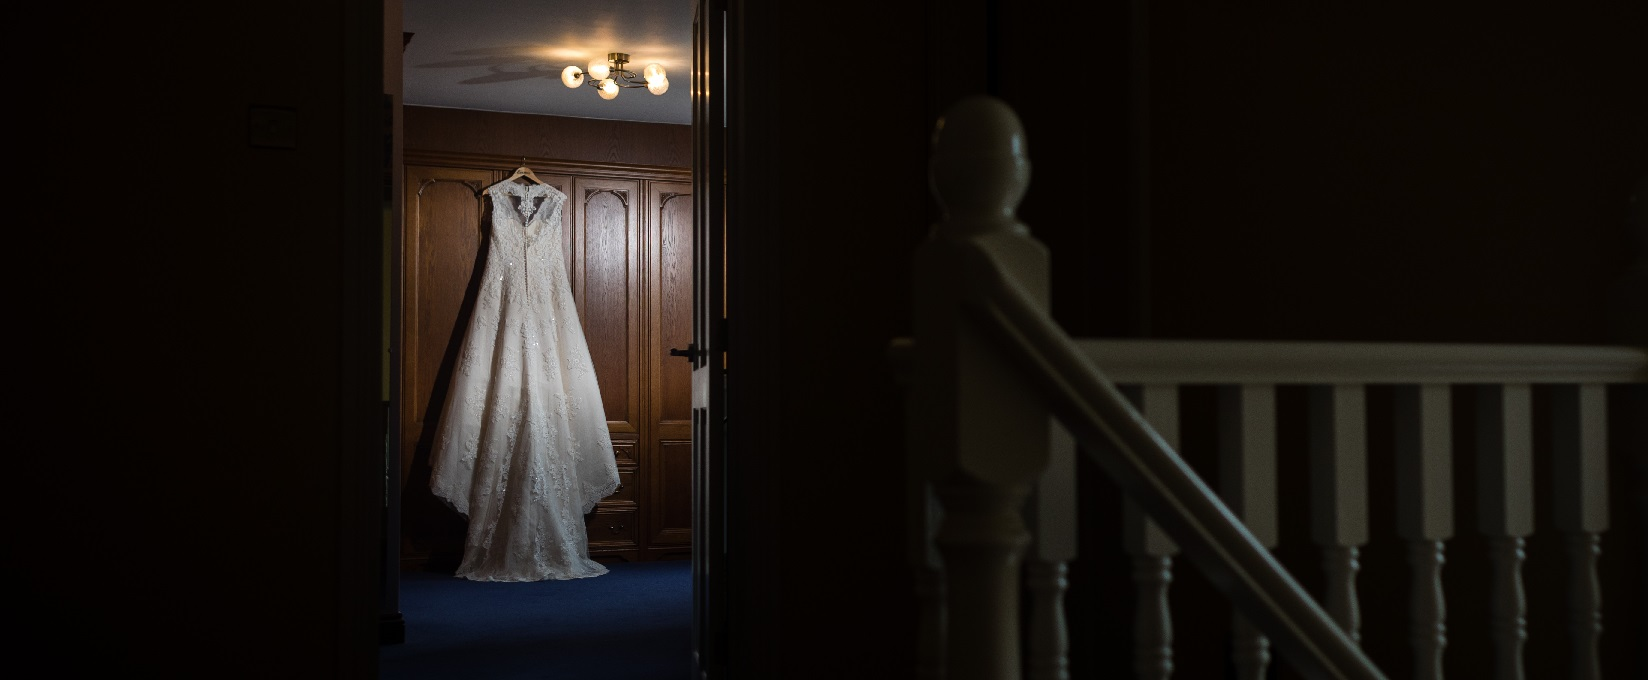 Emma and Carwyn's Wedding | The National Botanic Garden of Wales, Carmarthenshire, South Wales